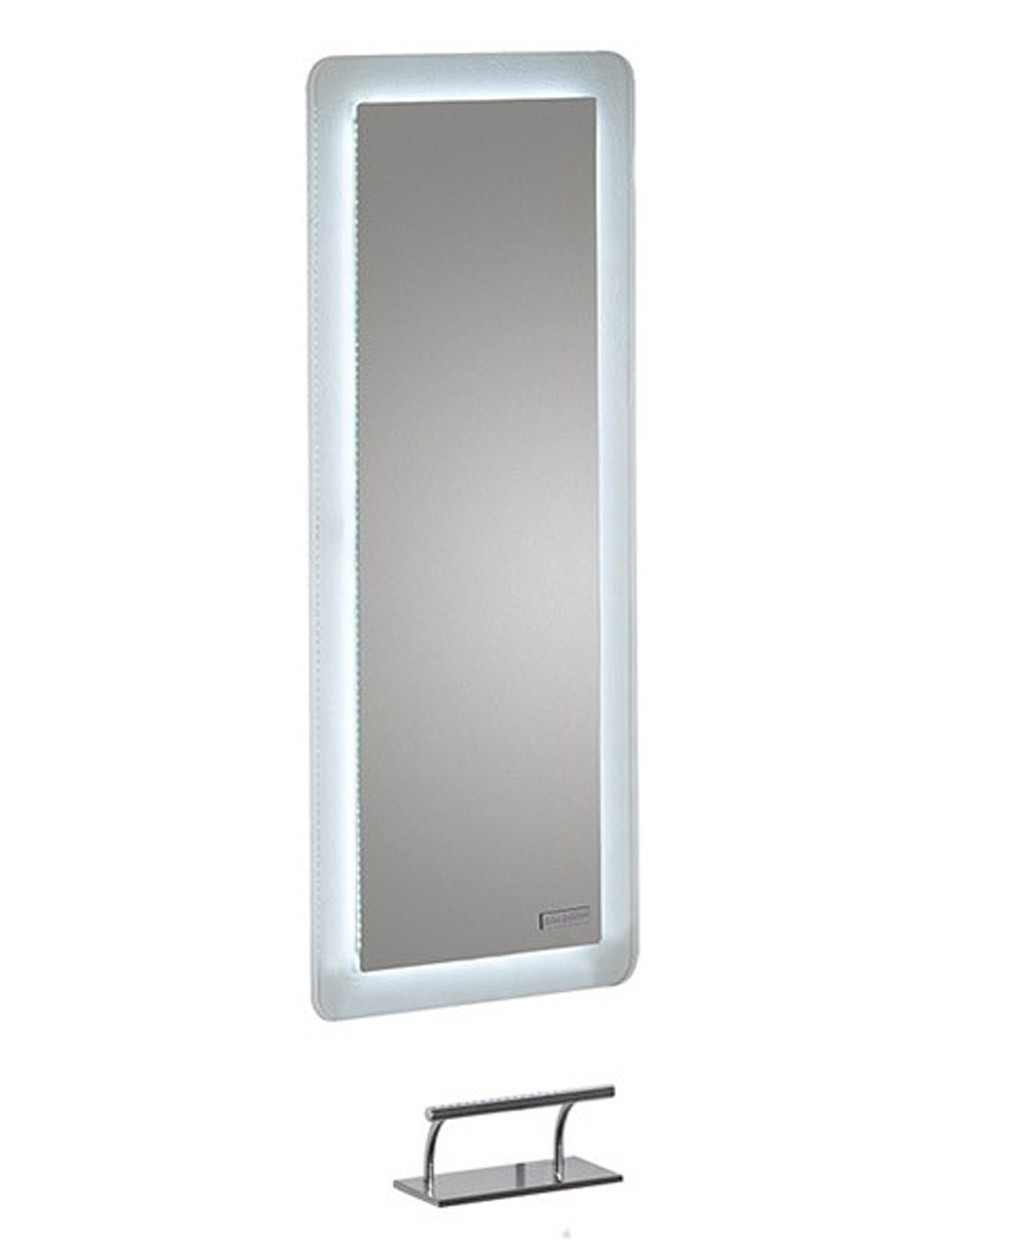 MI310 Impulse Mirror Styling Station